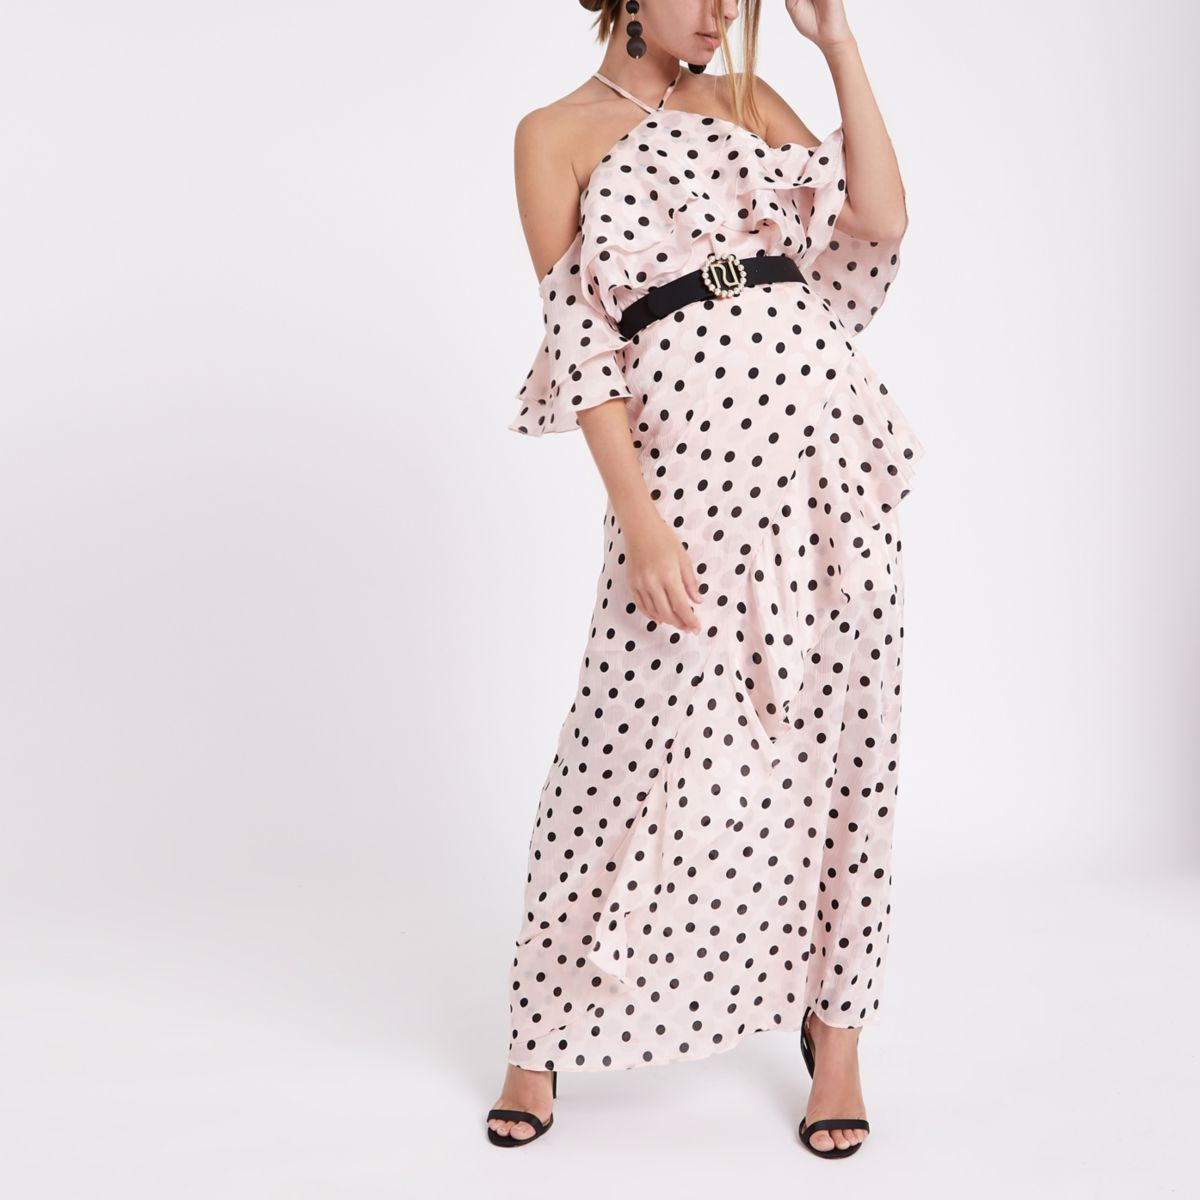 Shop from the world's largest selection and best deals for Polka Dot Pink Dresses for Women. Shop with confidence on eBay!